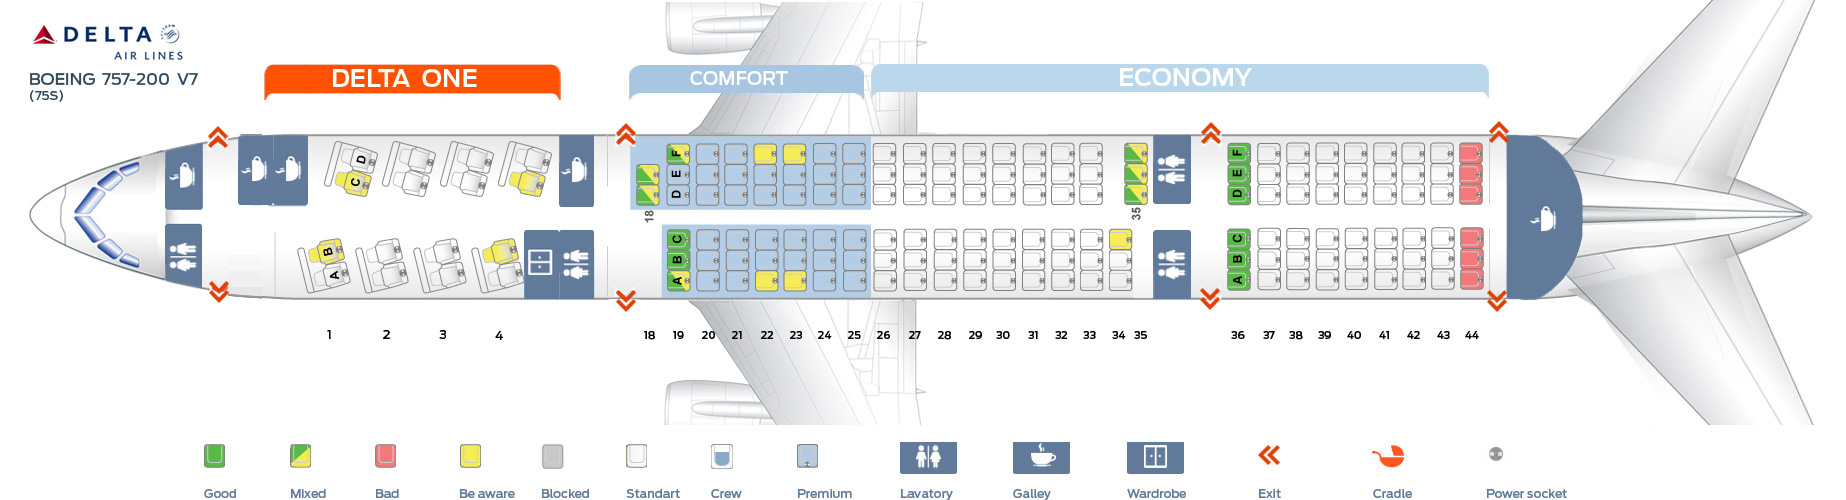 Seat map boeing 757 200 delta airlines best seats in plane for Delta main cabin vs delta comfort